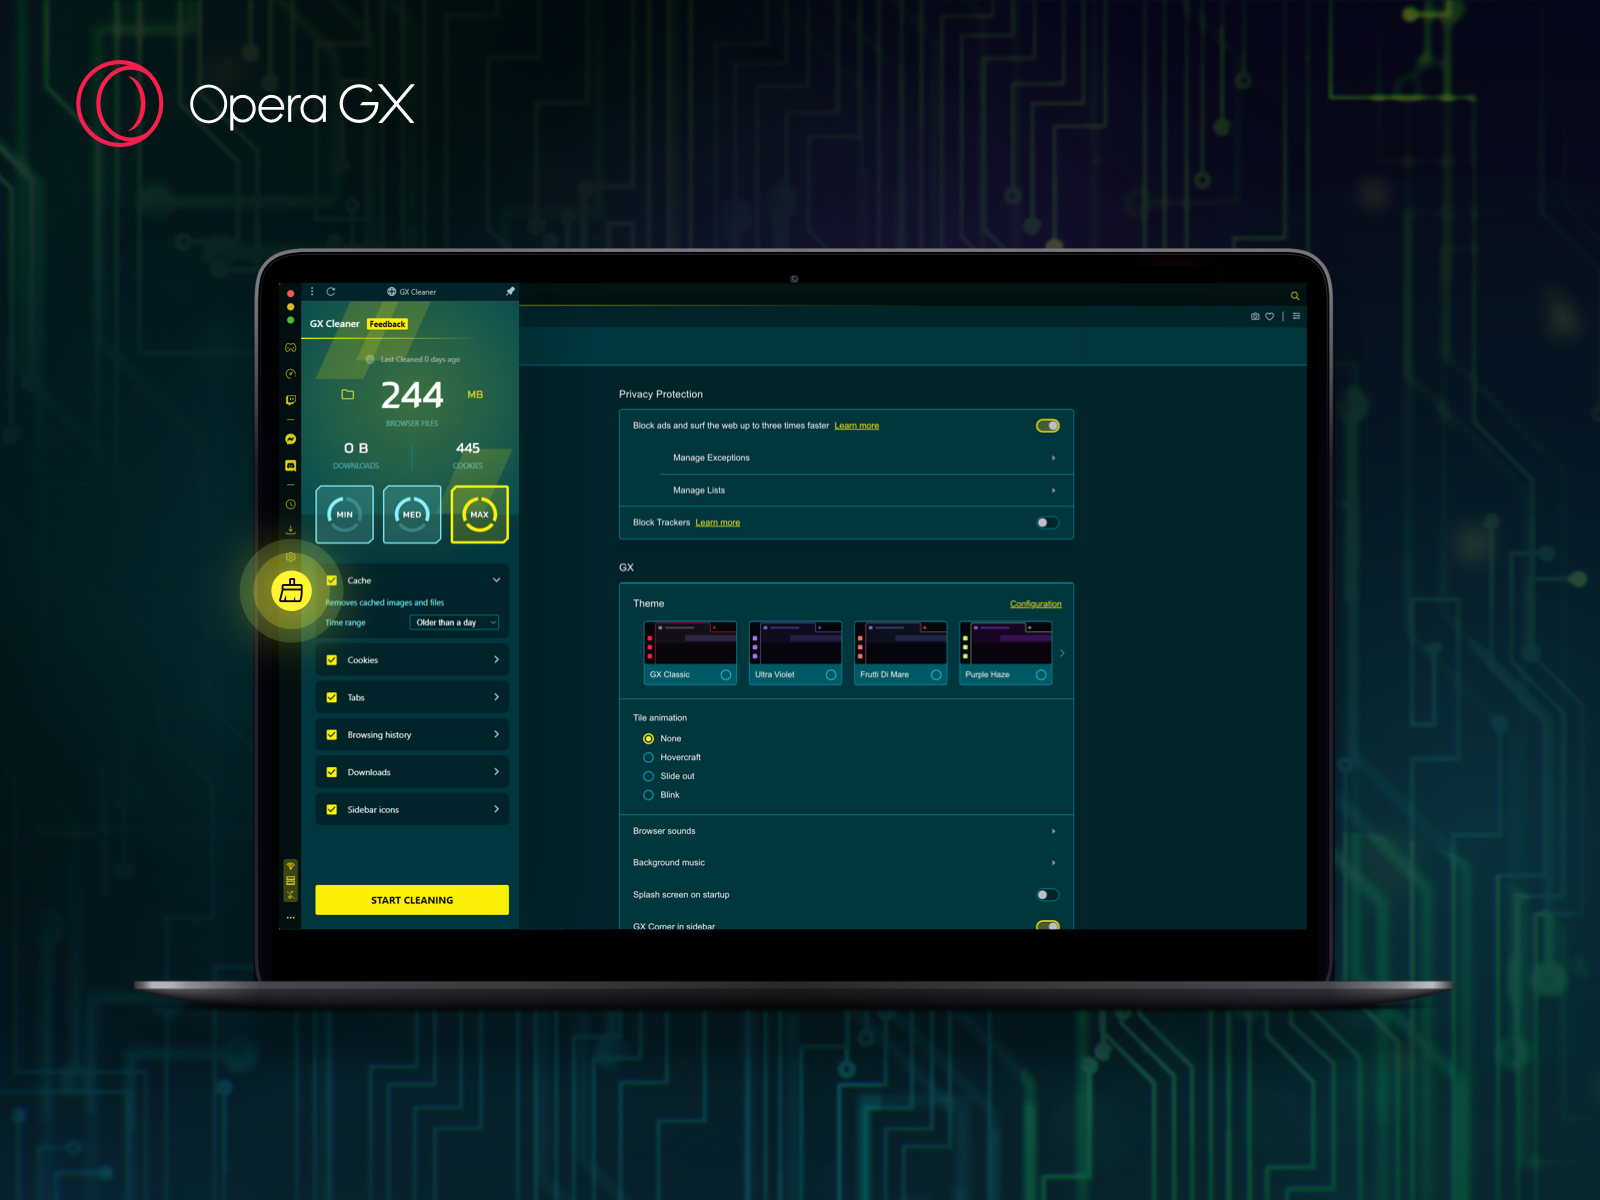 Opera GX now with smart cleaner and color themes